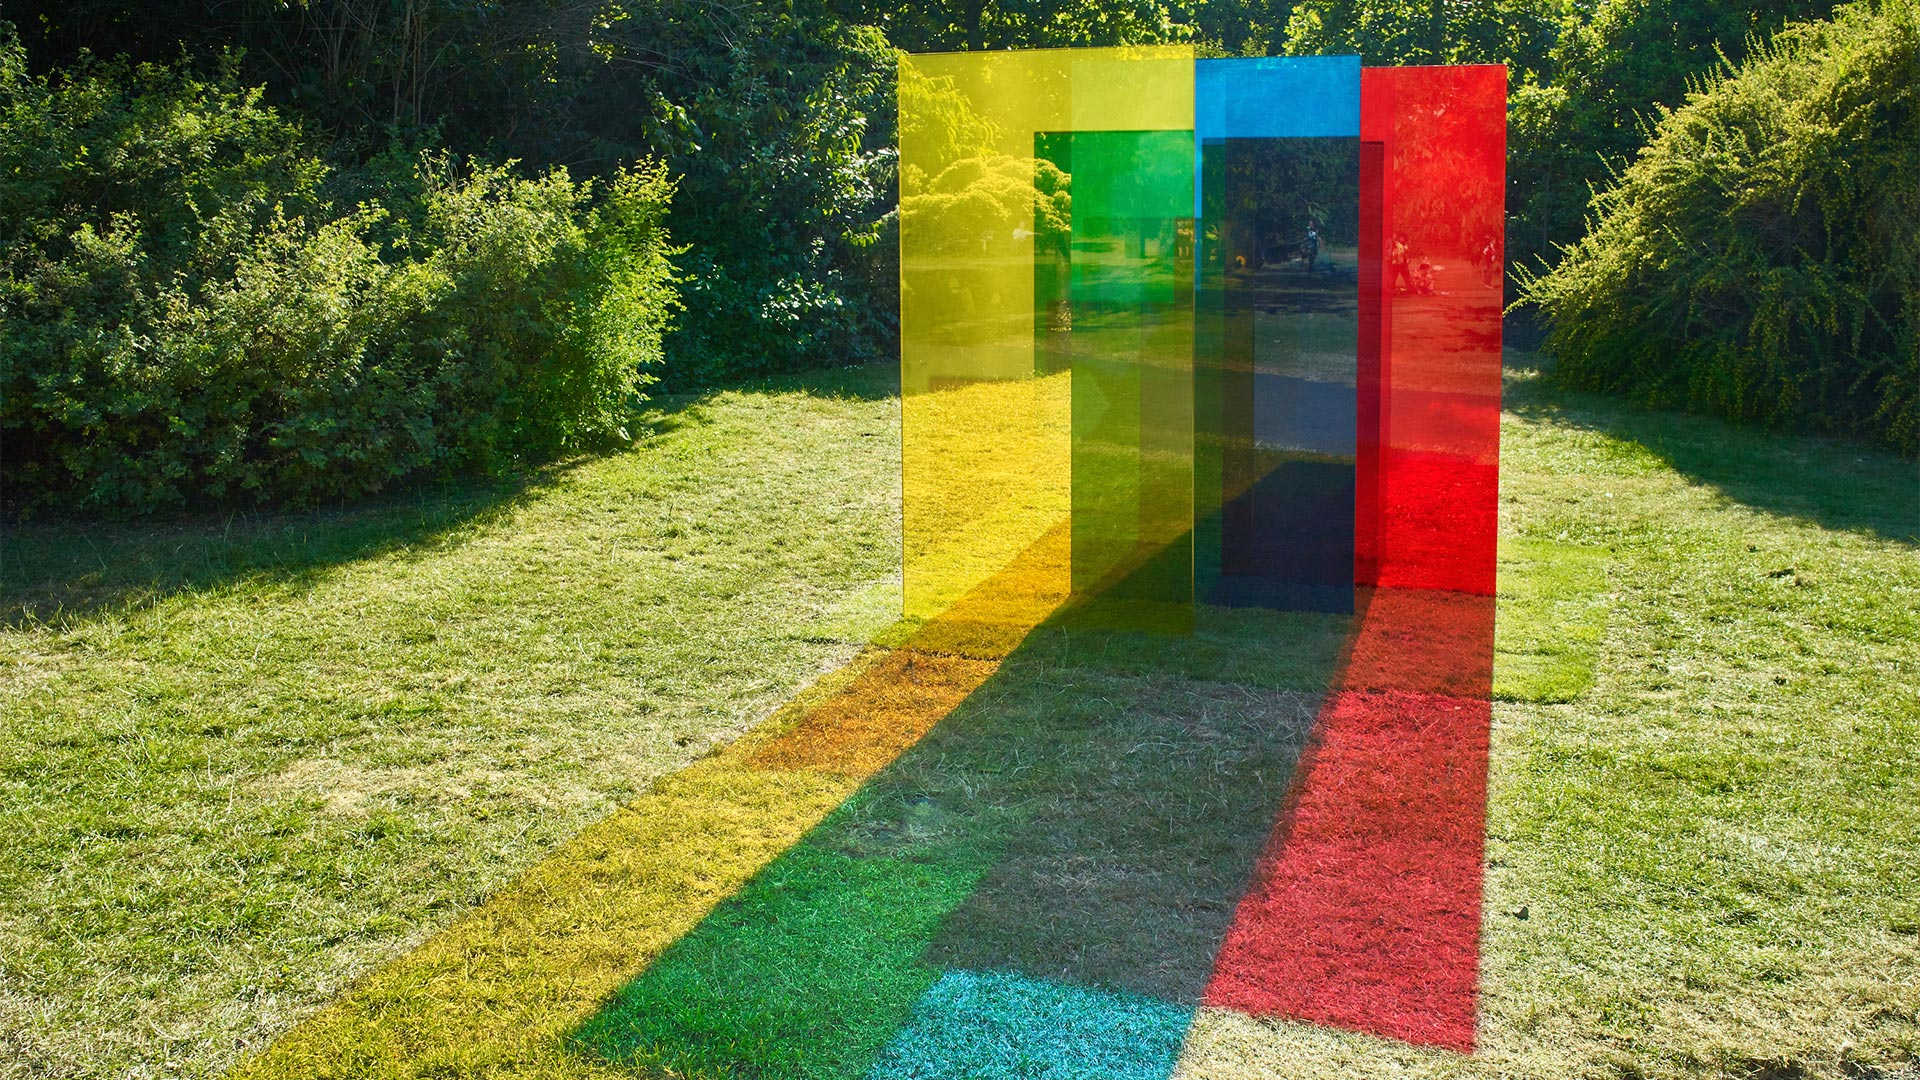 Four vertical pieces of coloured glass (yellow, green, blue and red) of varying heights, cast coloured shadows on the grass